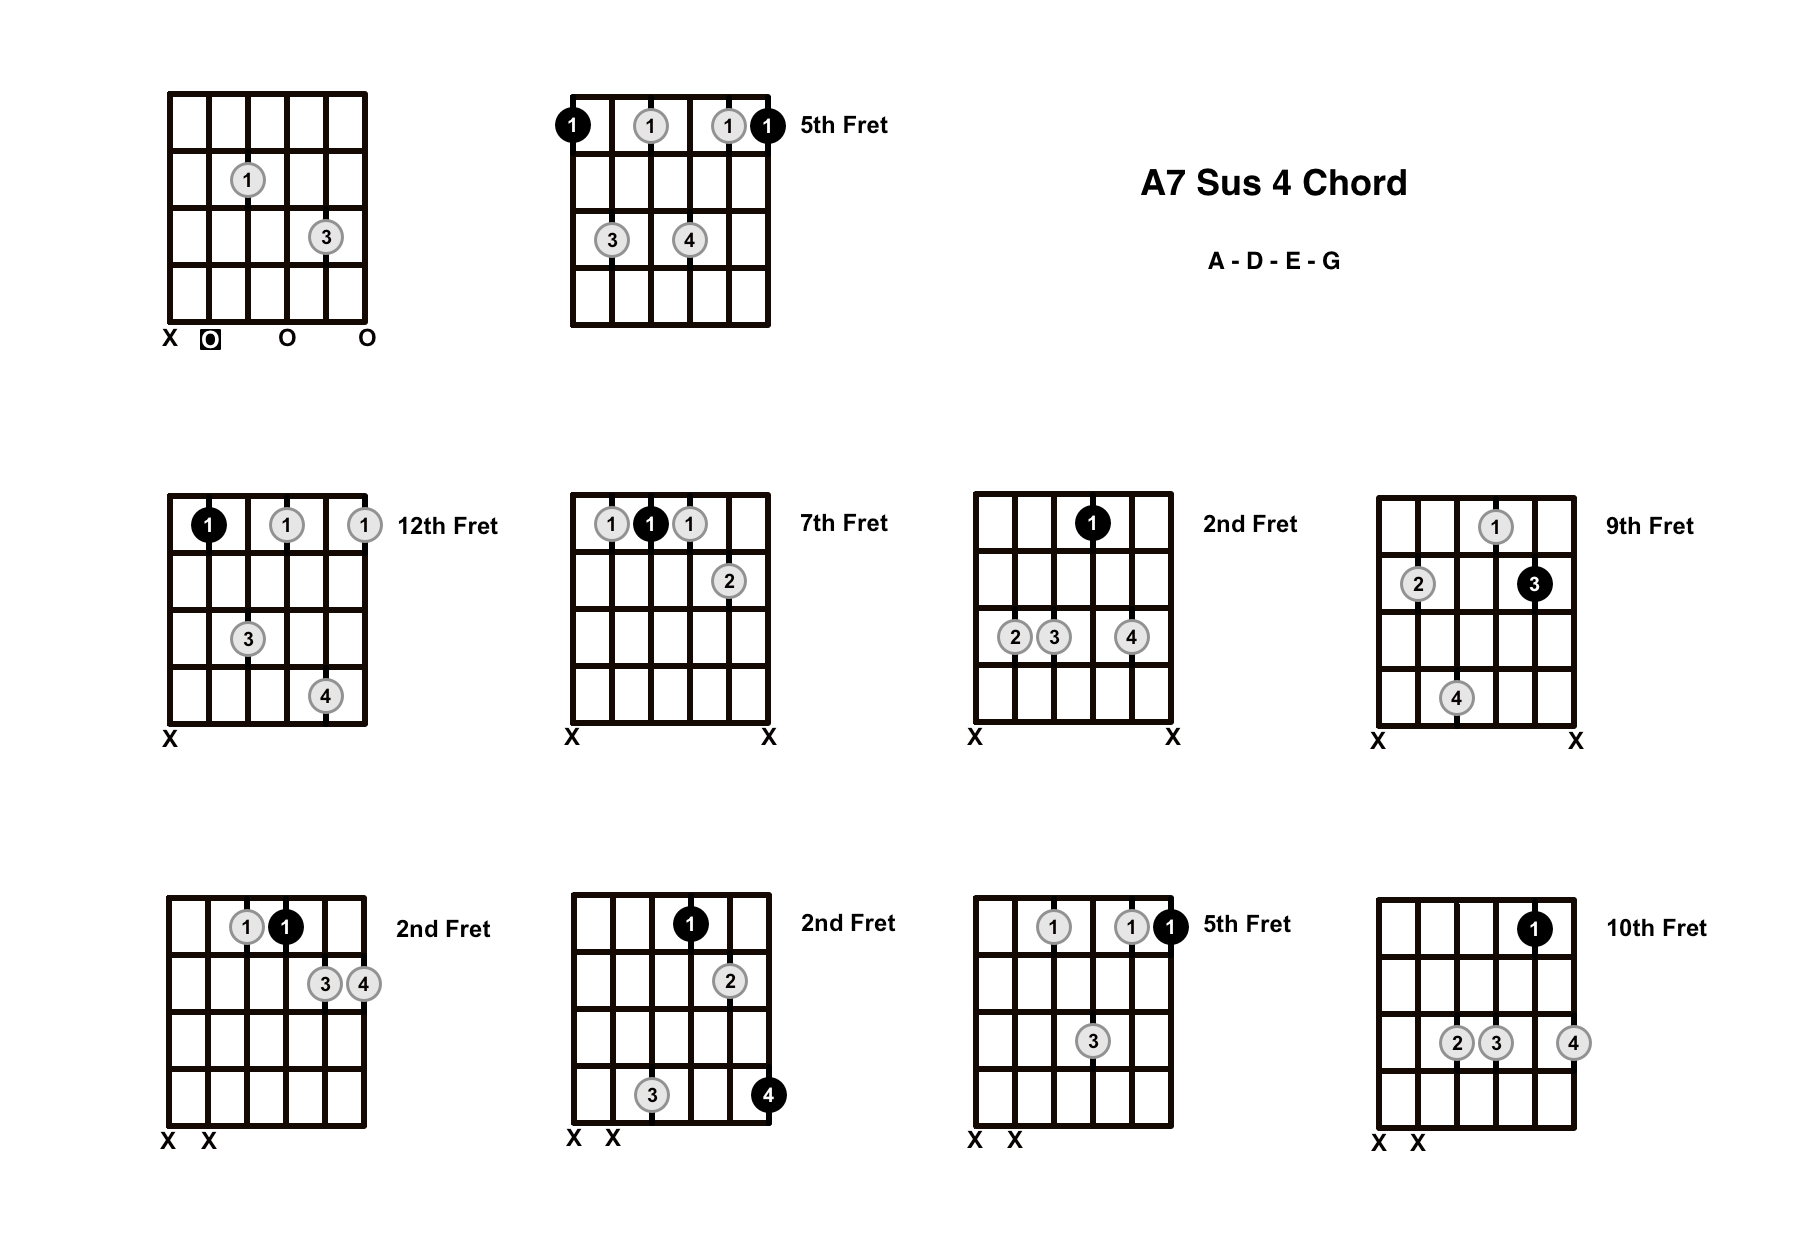 A7 Sus 4 Chord On The Guitar (A7 Suspended 4) – Diagrams, Finger Positions and Theory